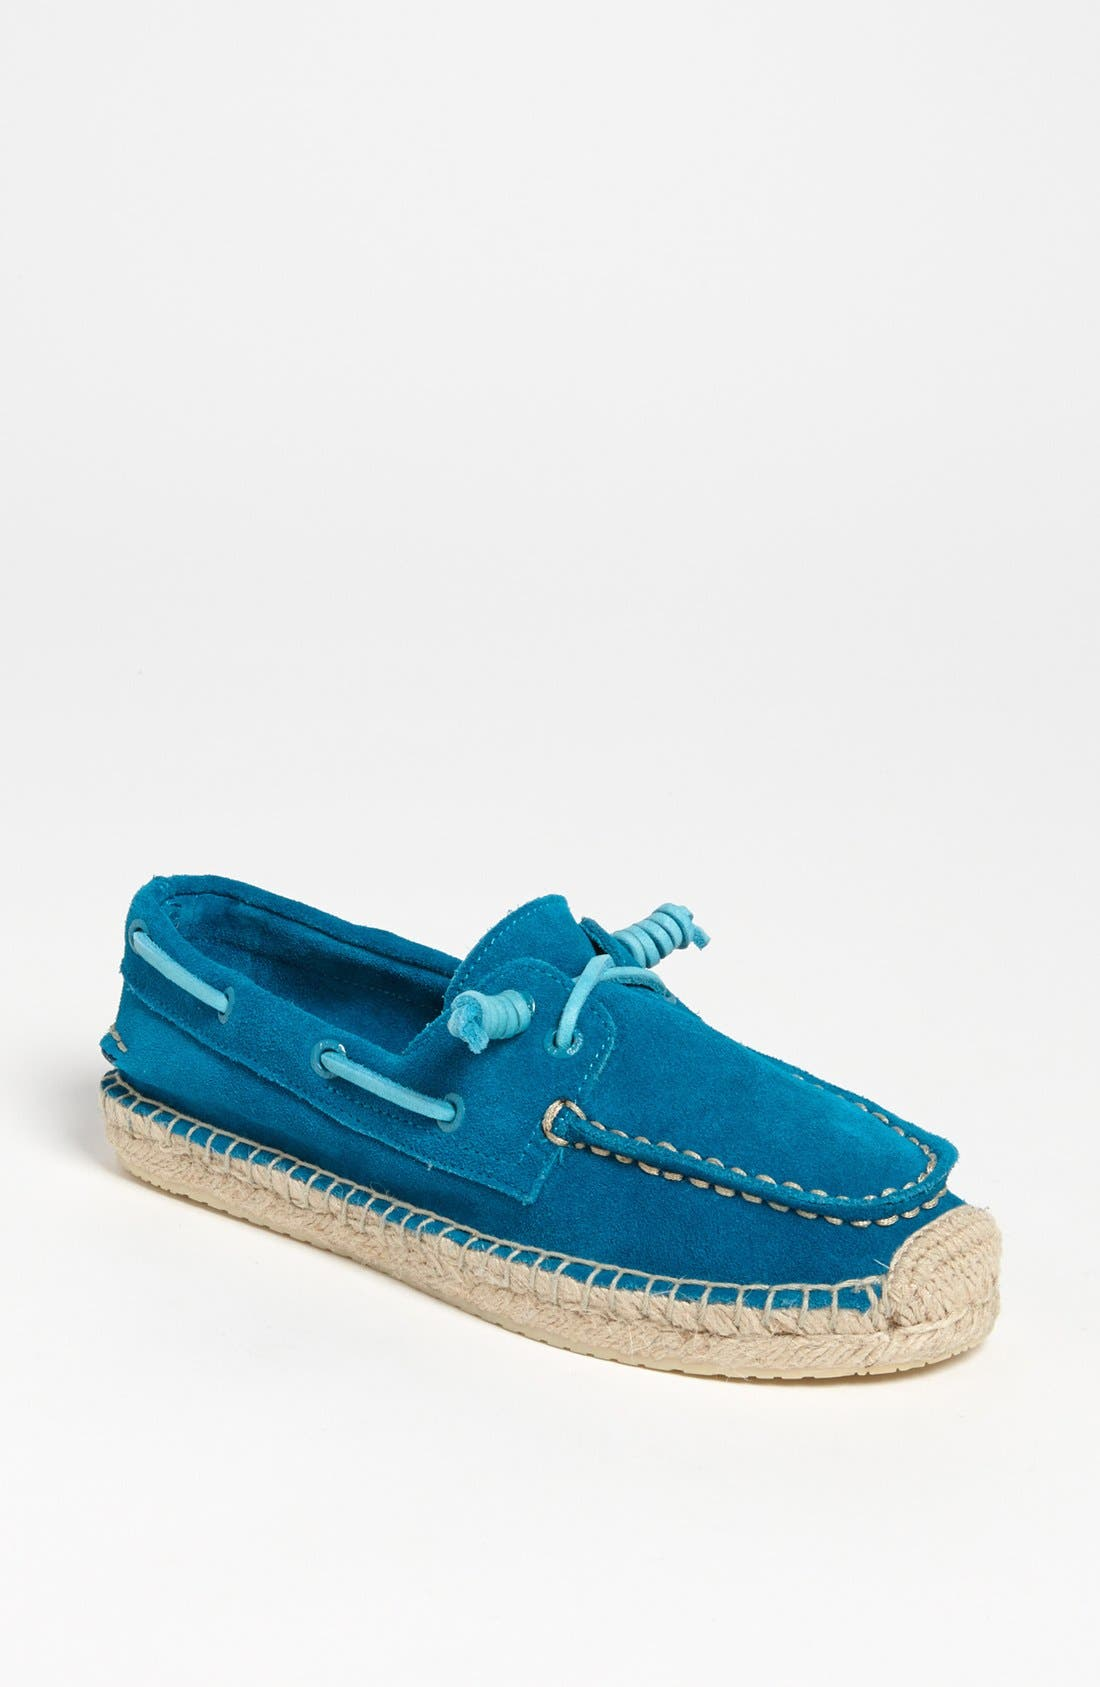 Alternate Image 1 Selected - Sperry® Top-Sider for Jeffrey 'Authentic Original' Espadrille